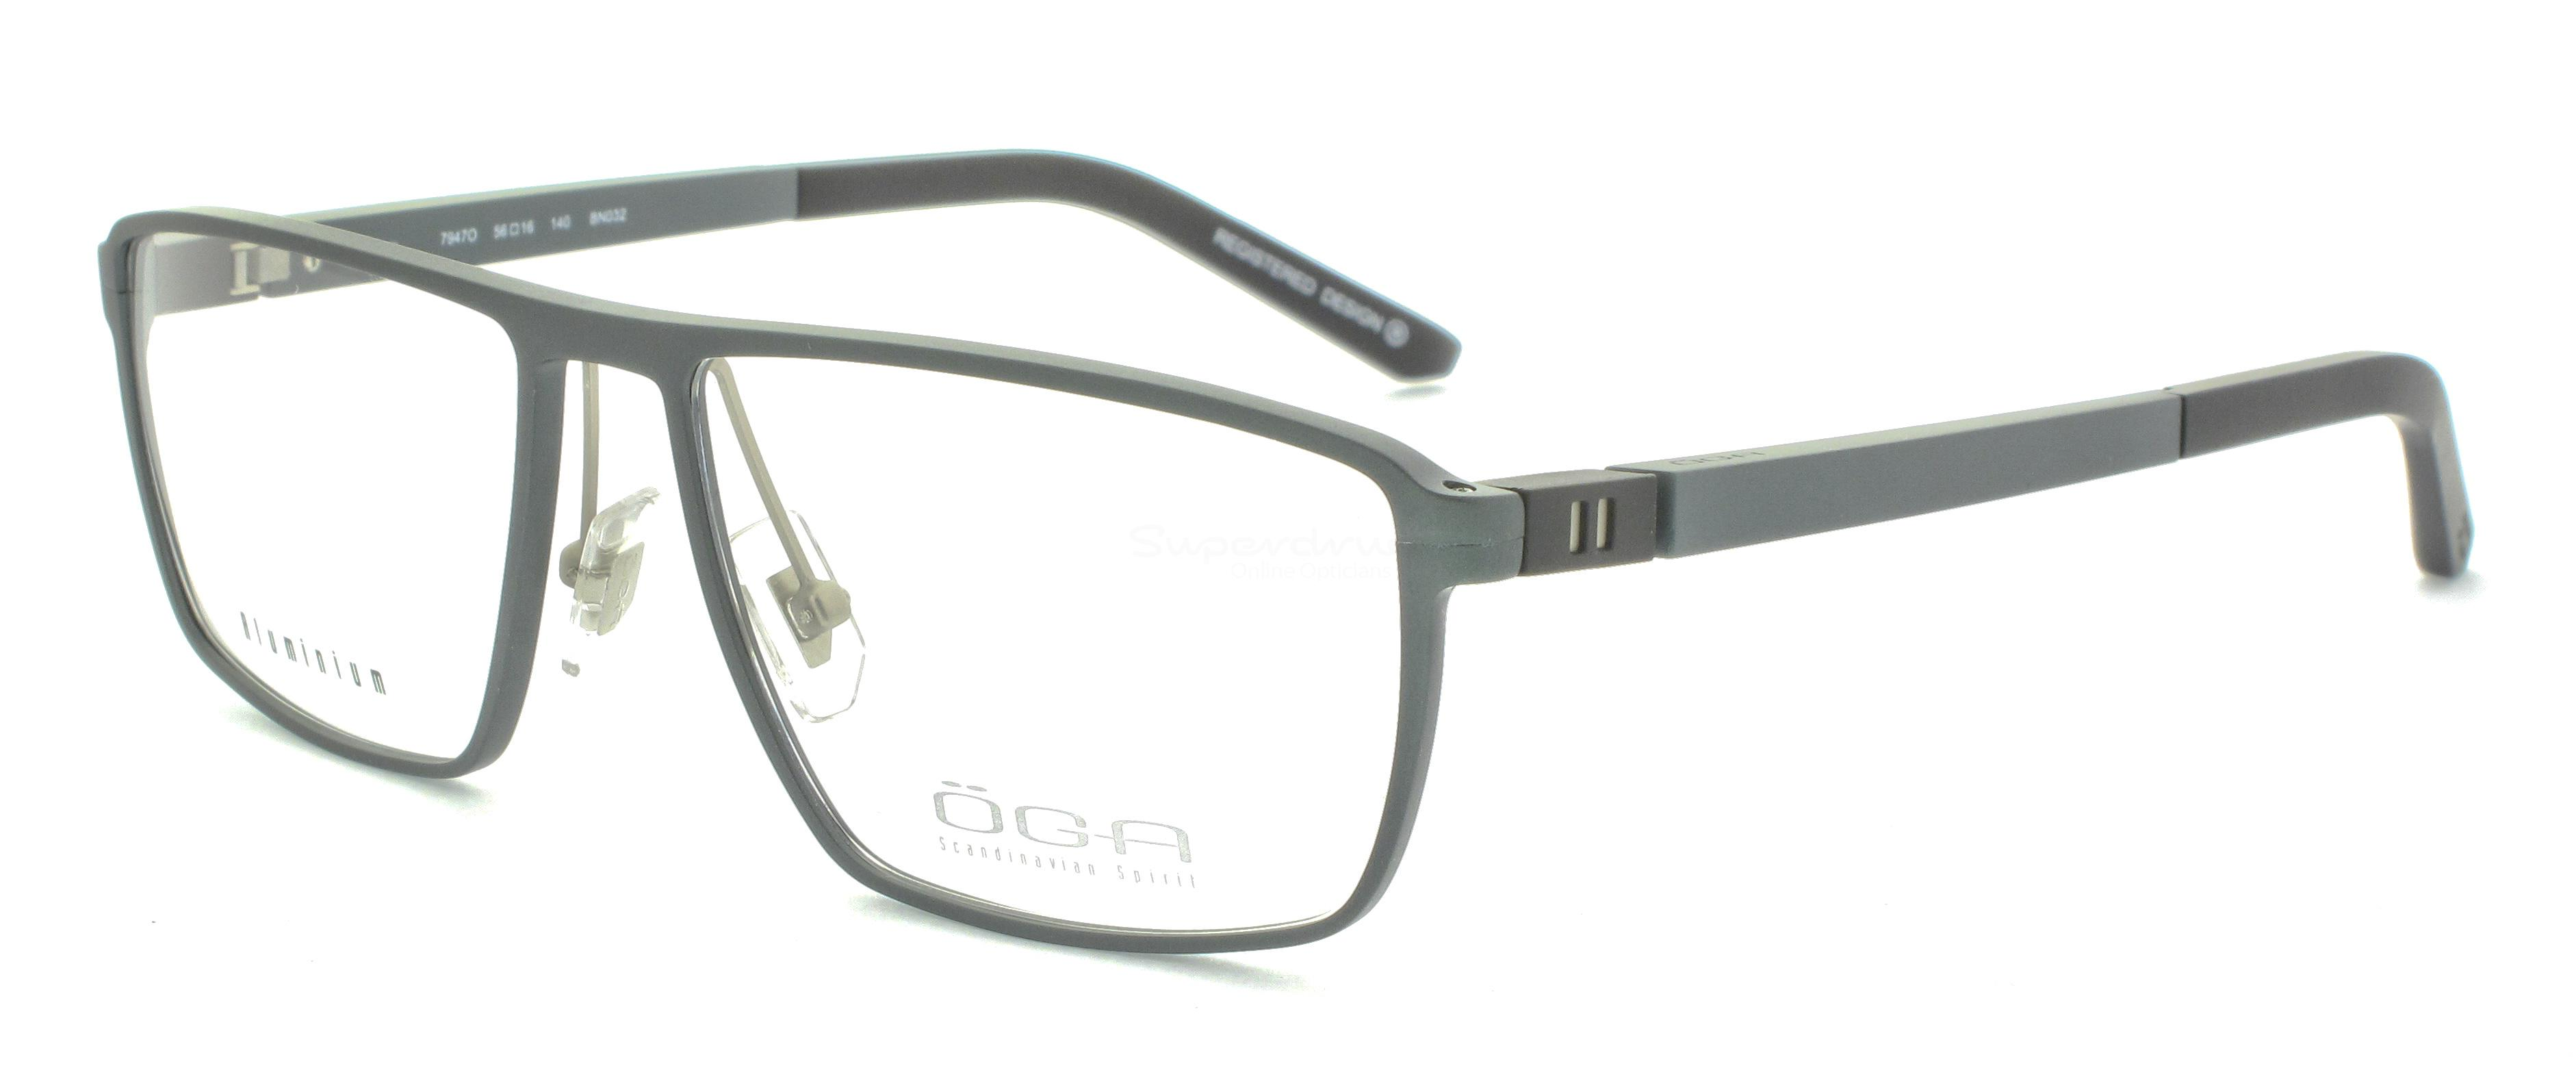 BN032 7947O SKARP (FULL  ALUMINIUM) Glasses, ÖGA Scandinavian Spirit